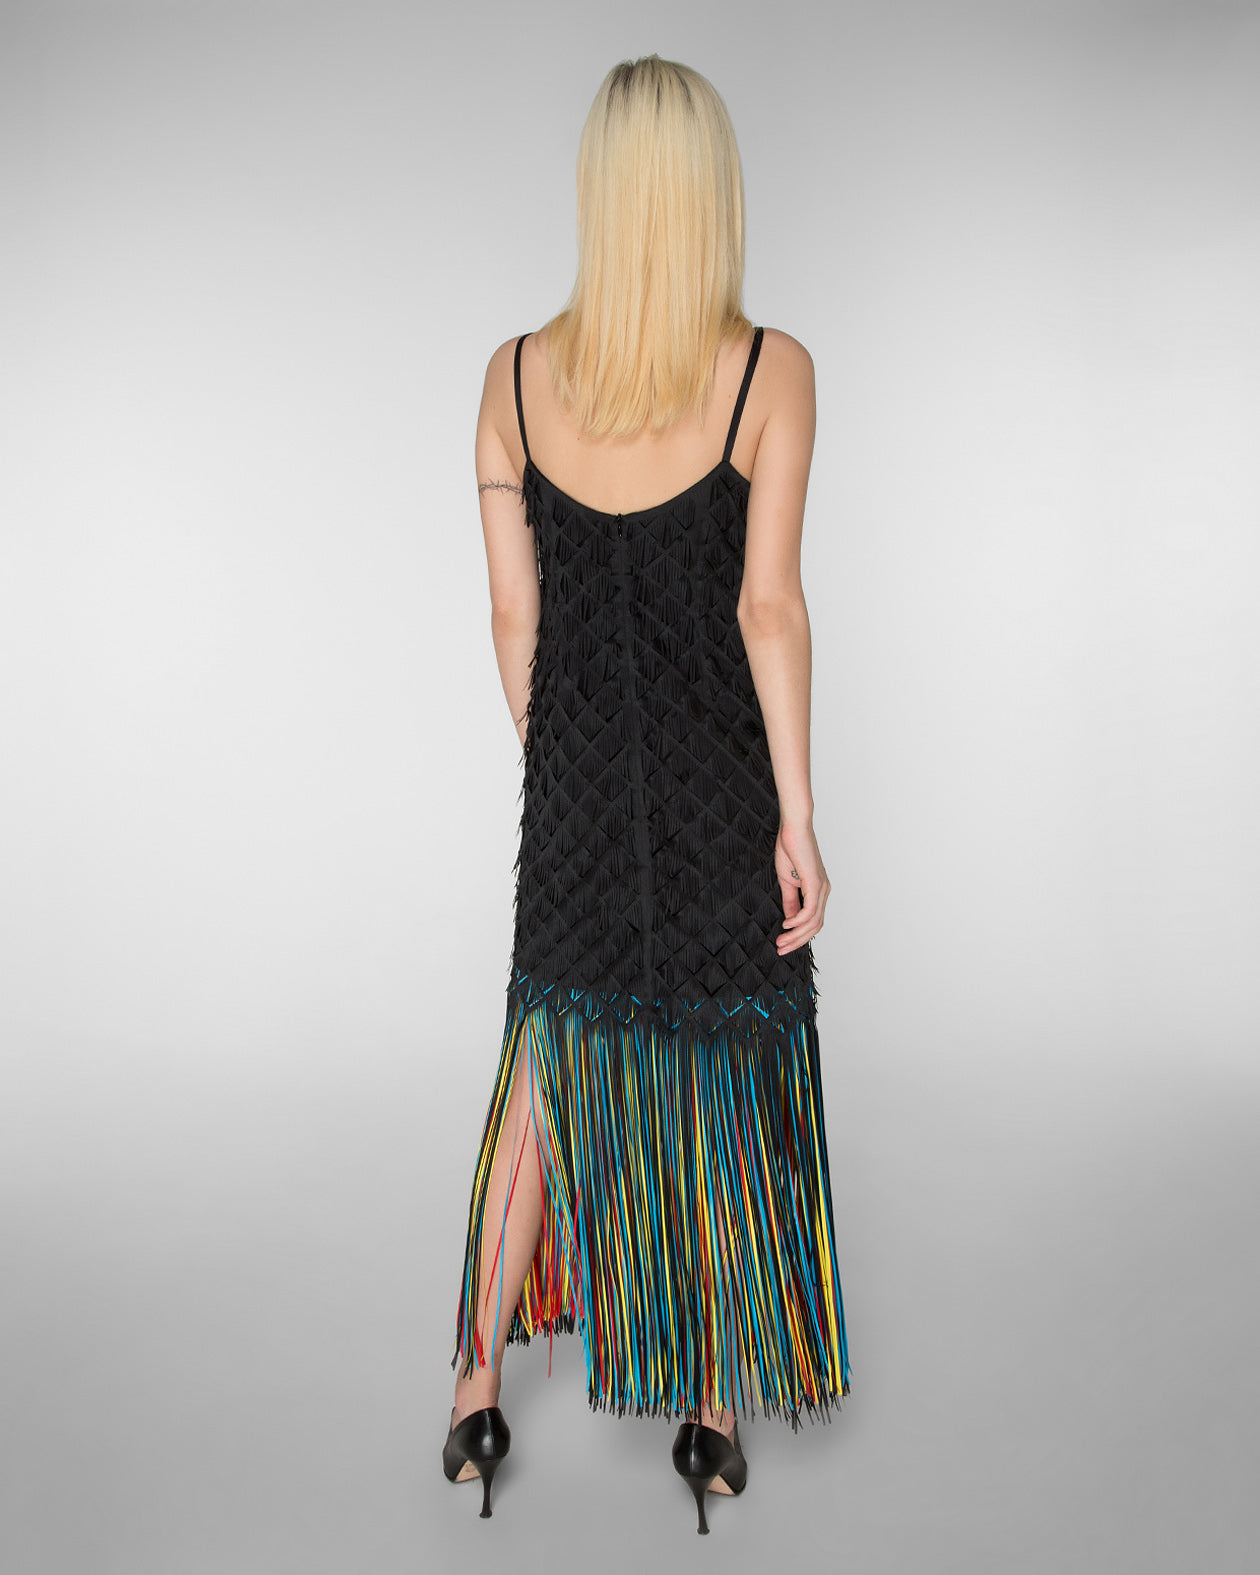 Shoulder strap maxi dress with multicolored fringe hem